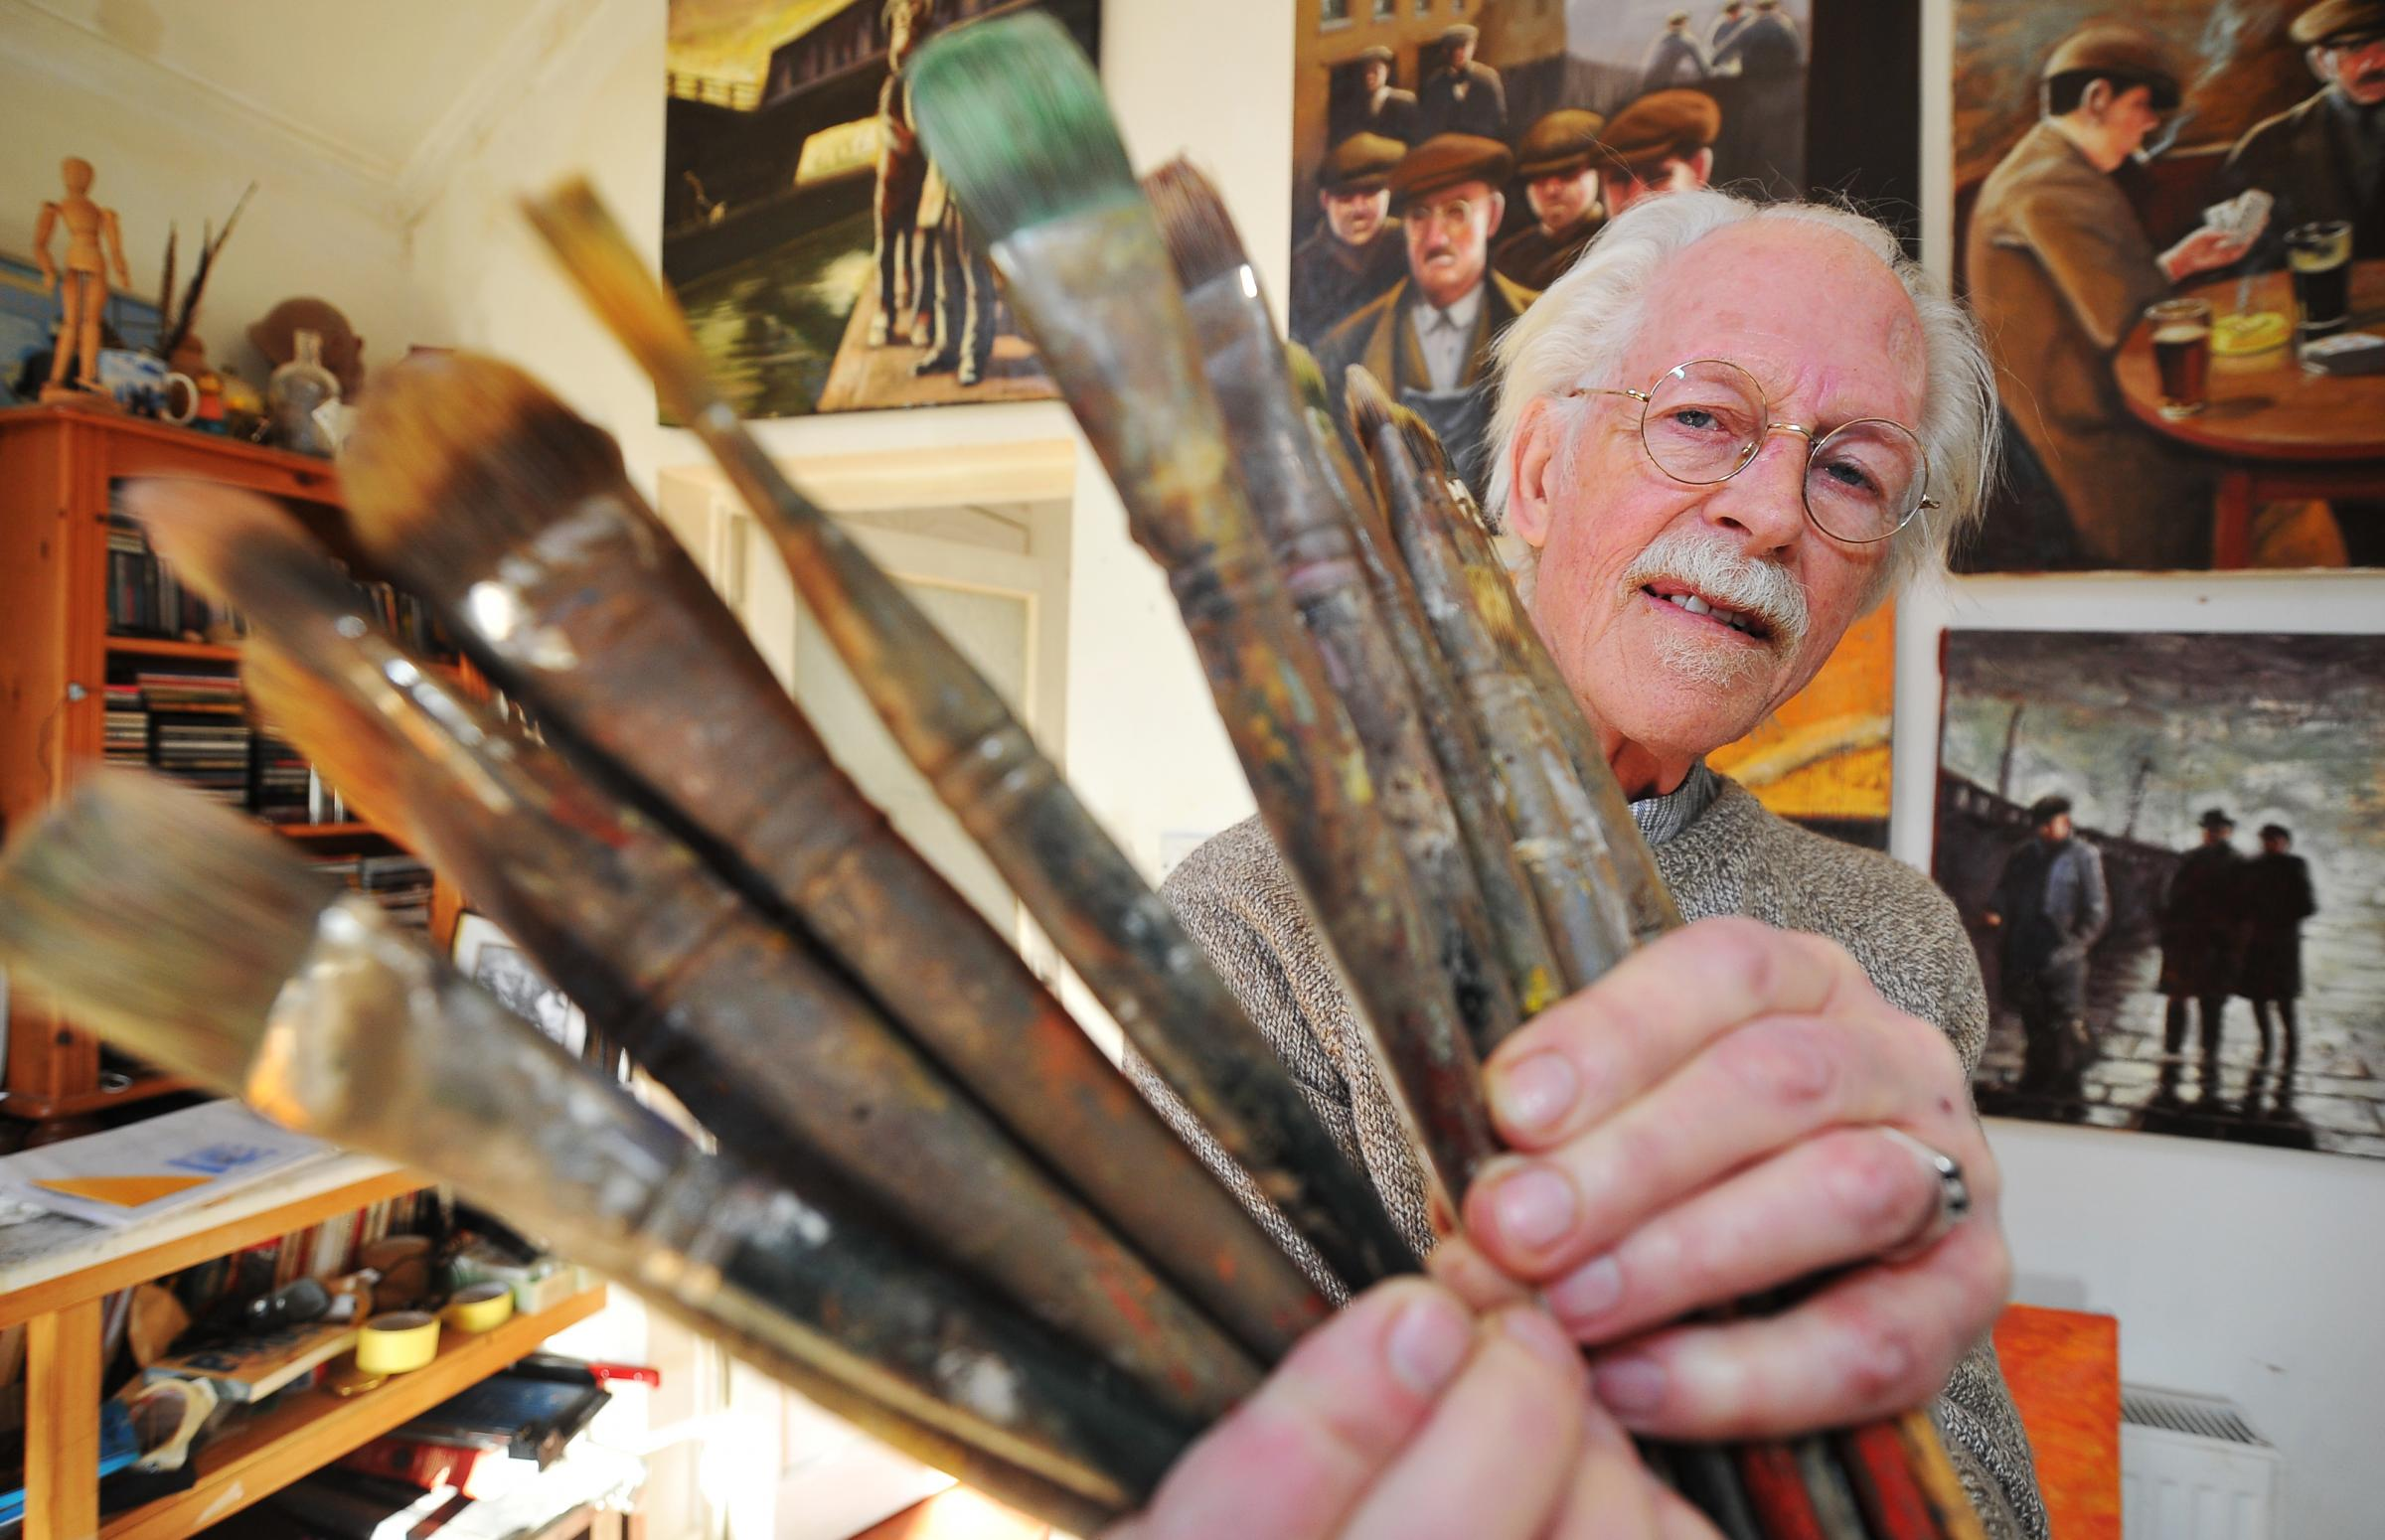 Muralist Ken White to stage railways exhibition at Swindon Museum and Art Gallery